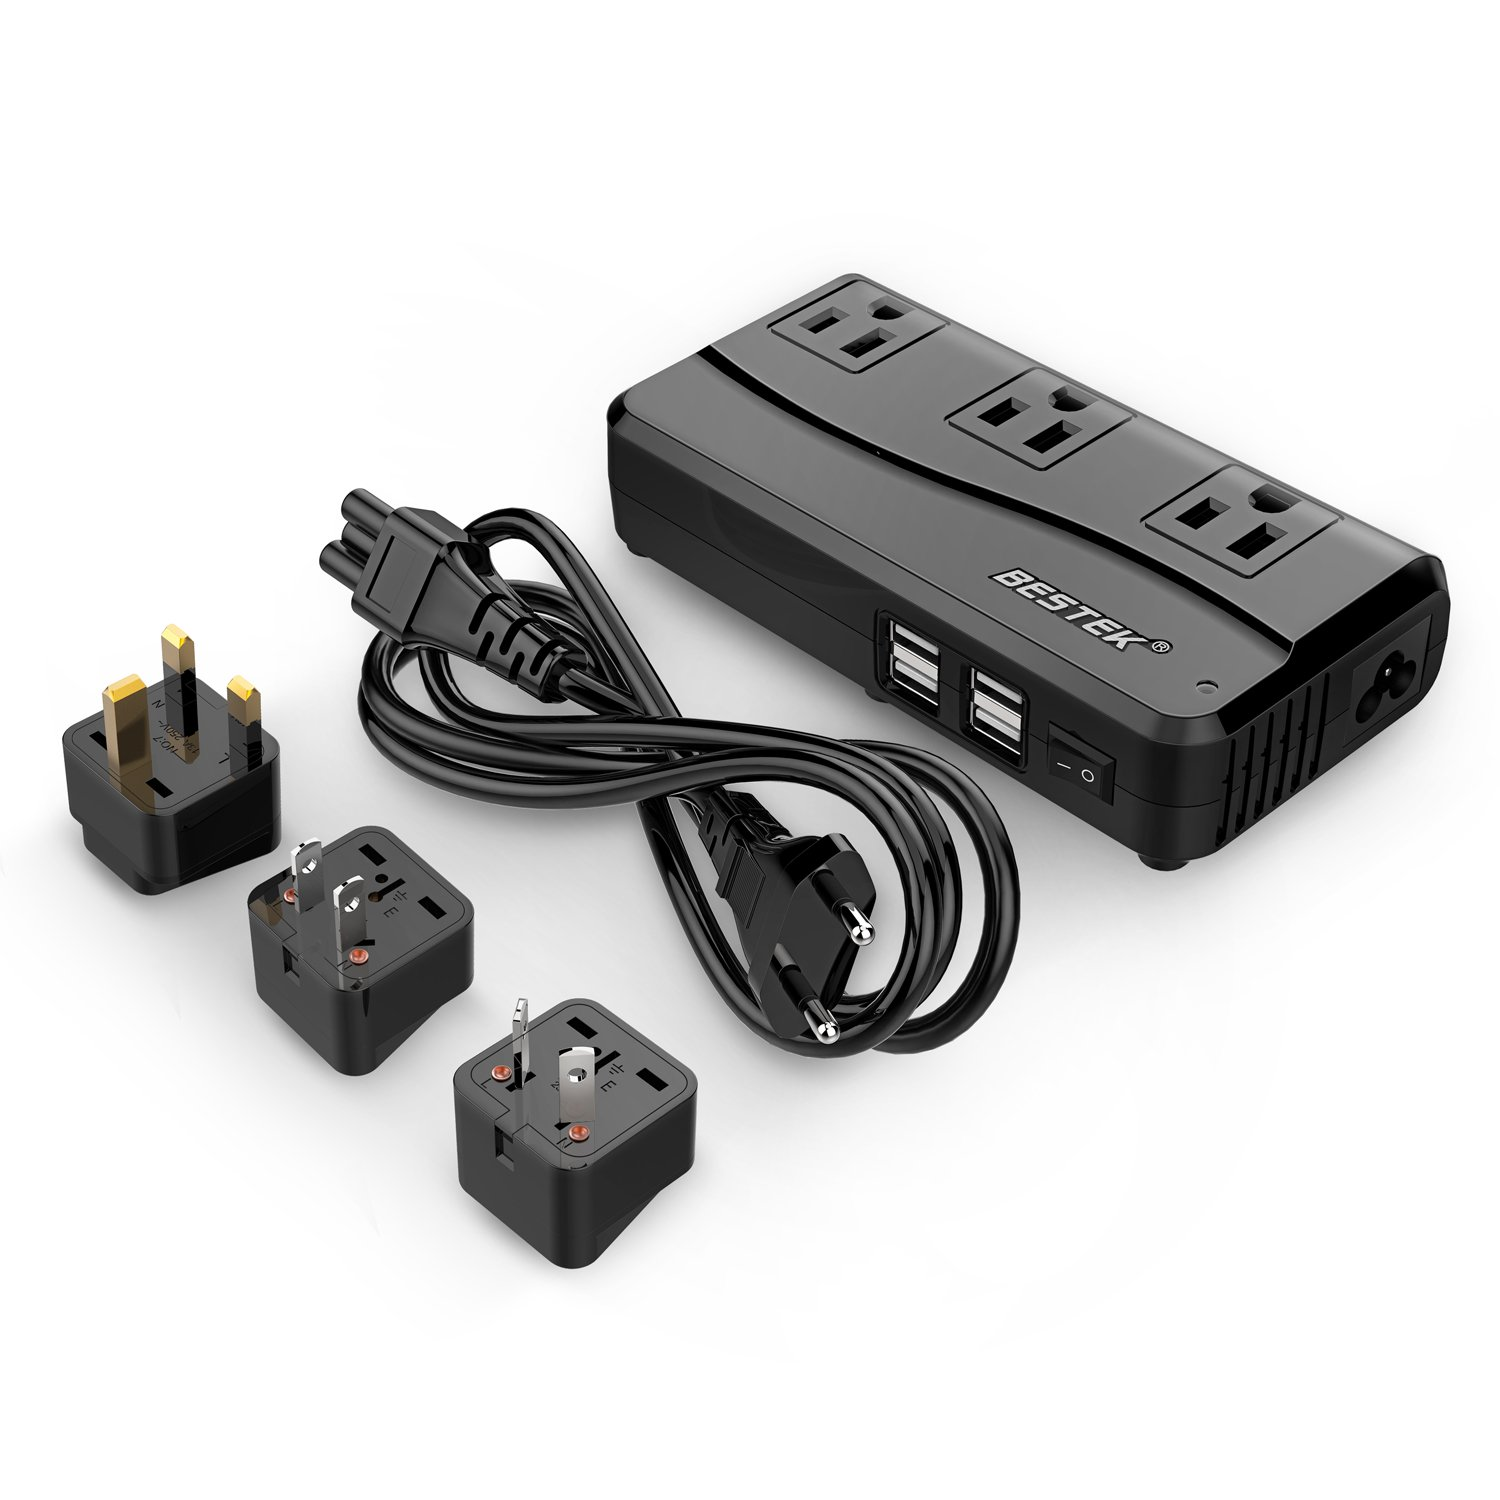 [Patent Protected] BESTEK Universal Travel Adapter 220V to 110V Voltage Converter with 6A 4-Port USB Charging and UK/AU/US/EU Worldwide Plug Adapter